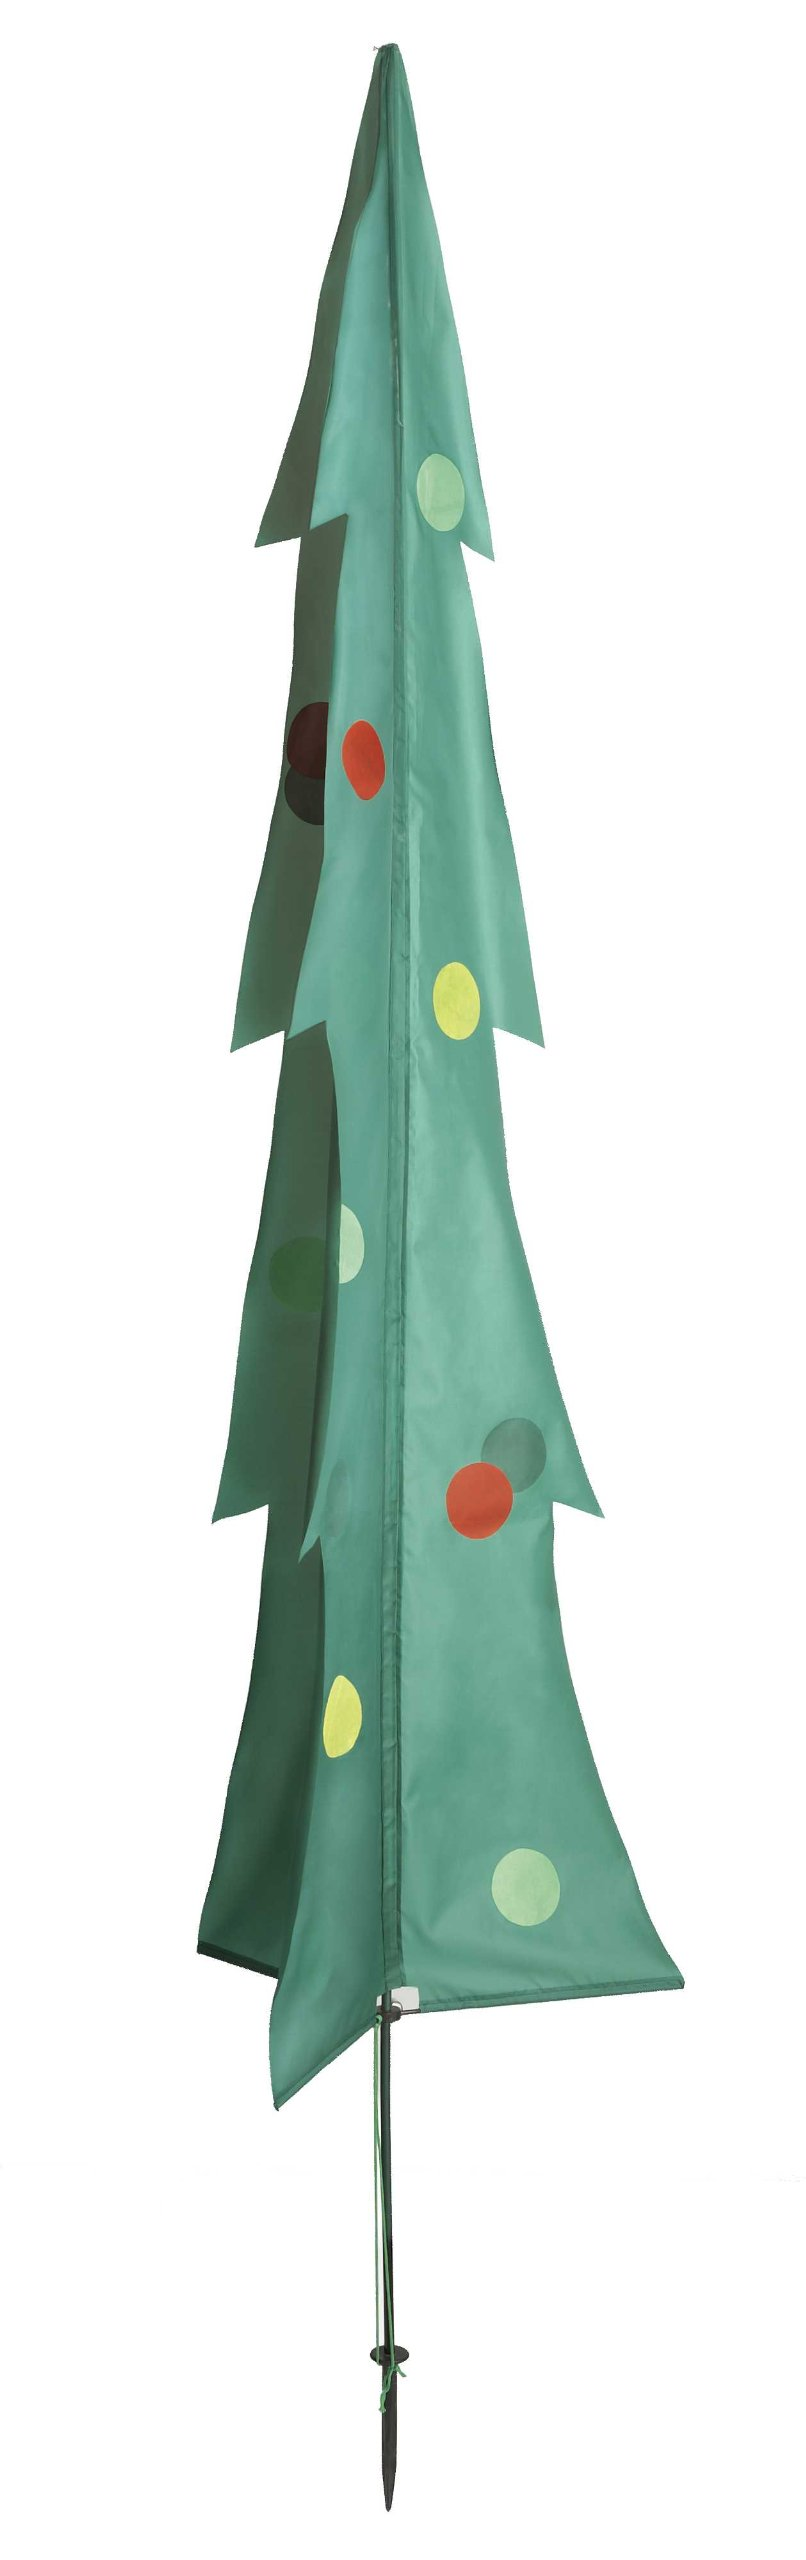 8 Foot Christmas Tree by Ganz